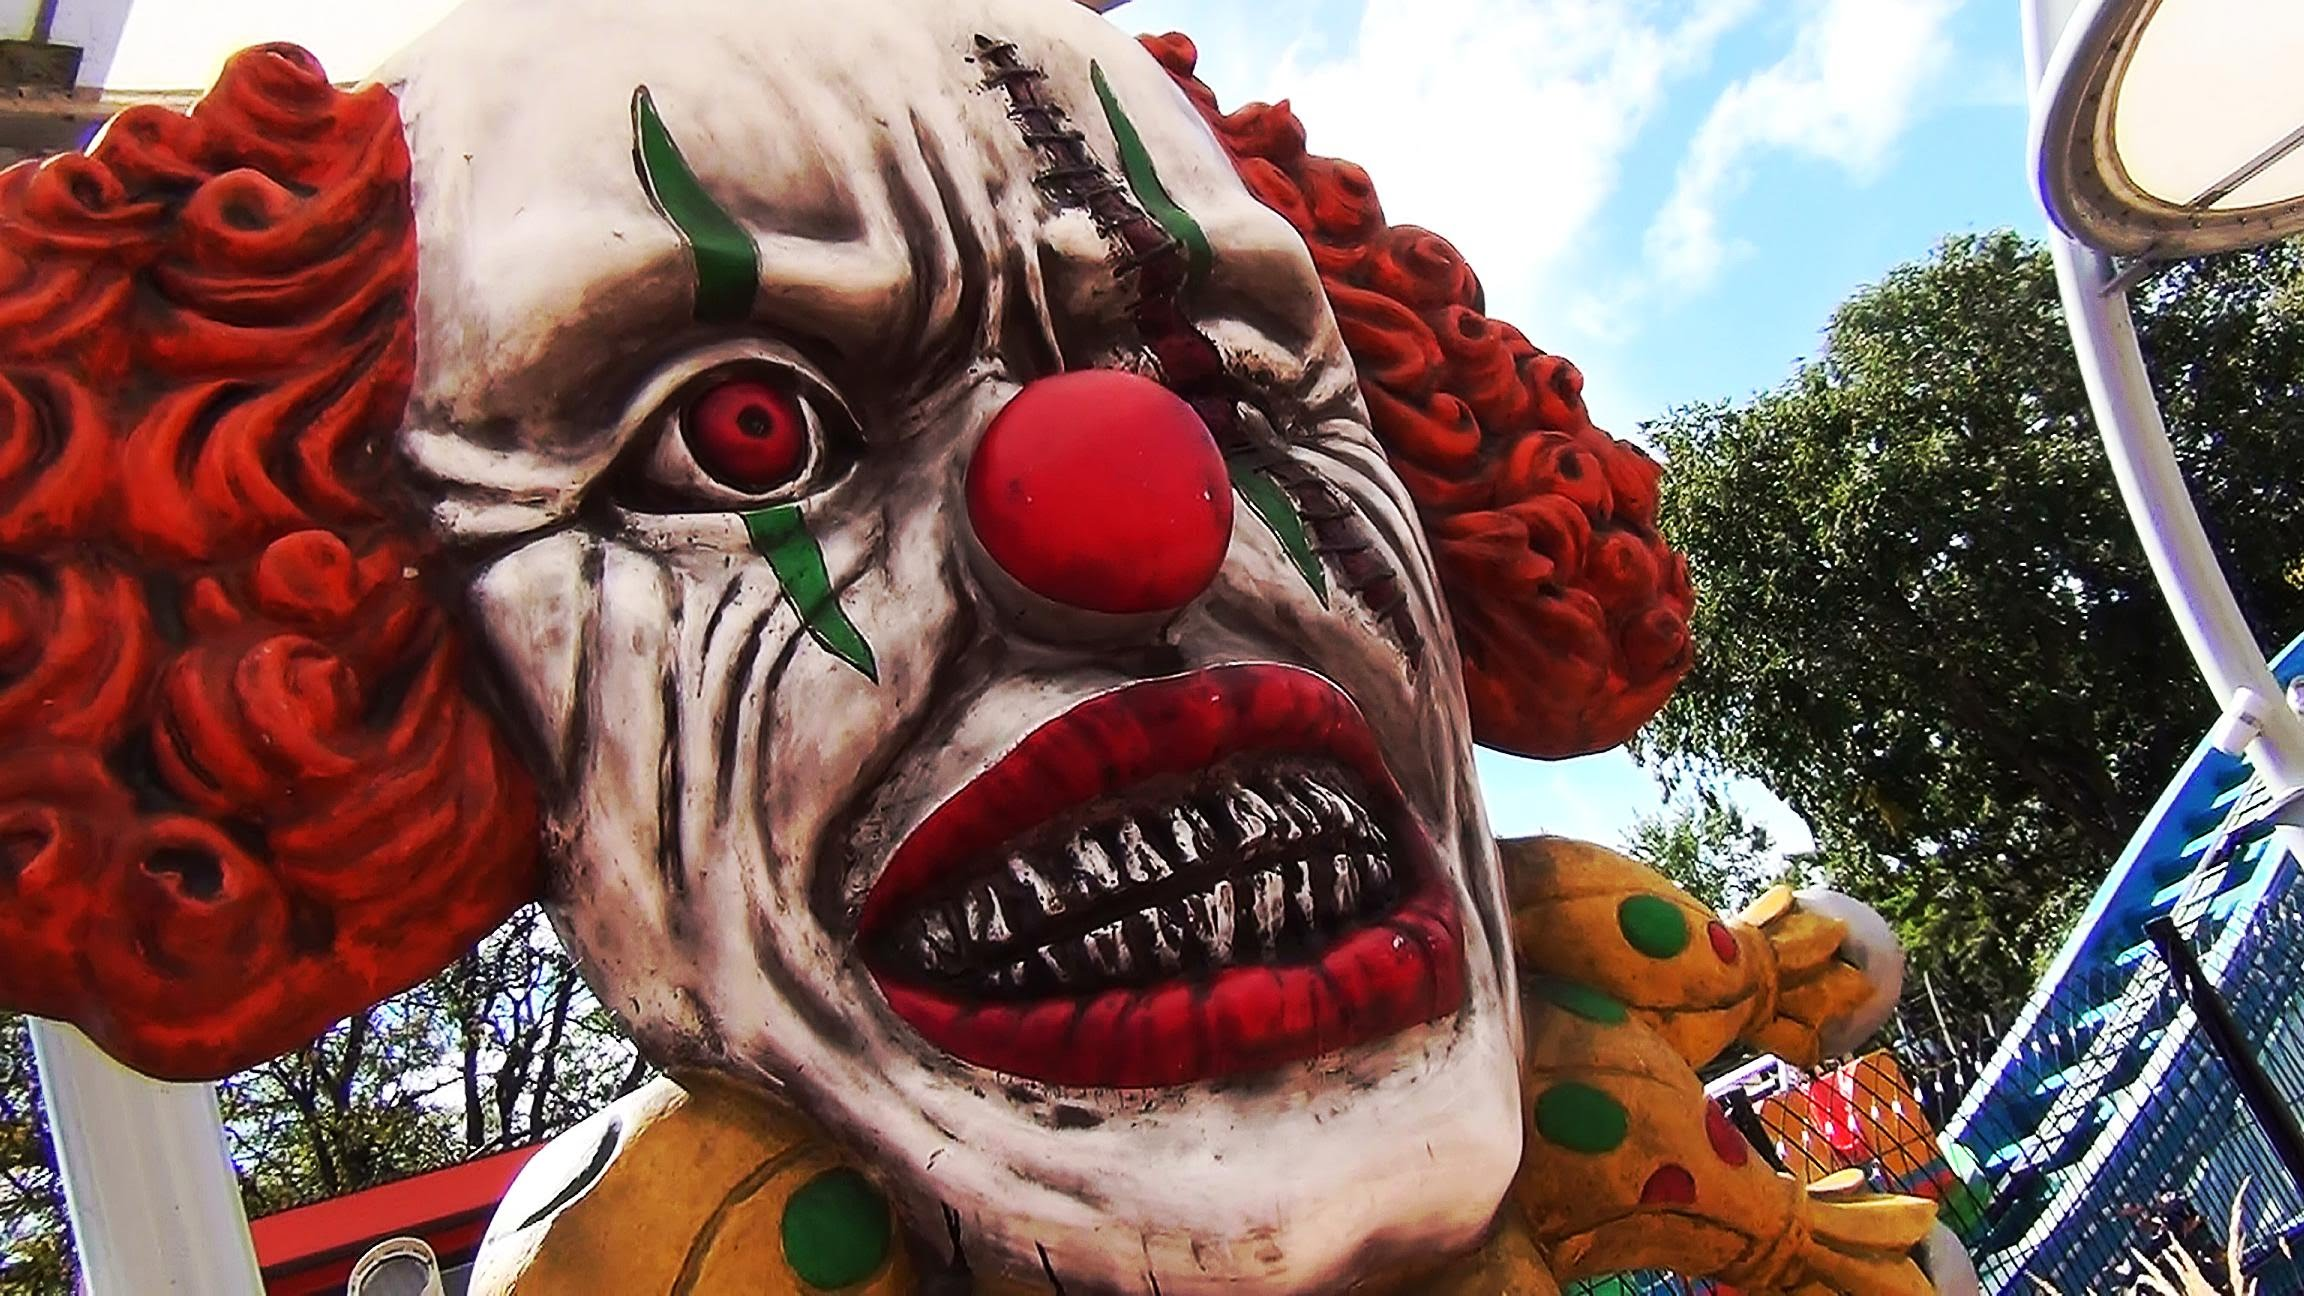 cedarpointhalloweekends - 5 Halloween Events Around the US You Should Check Out